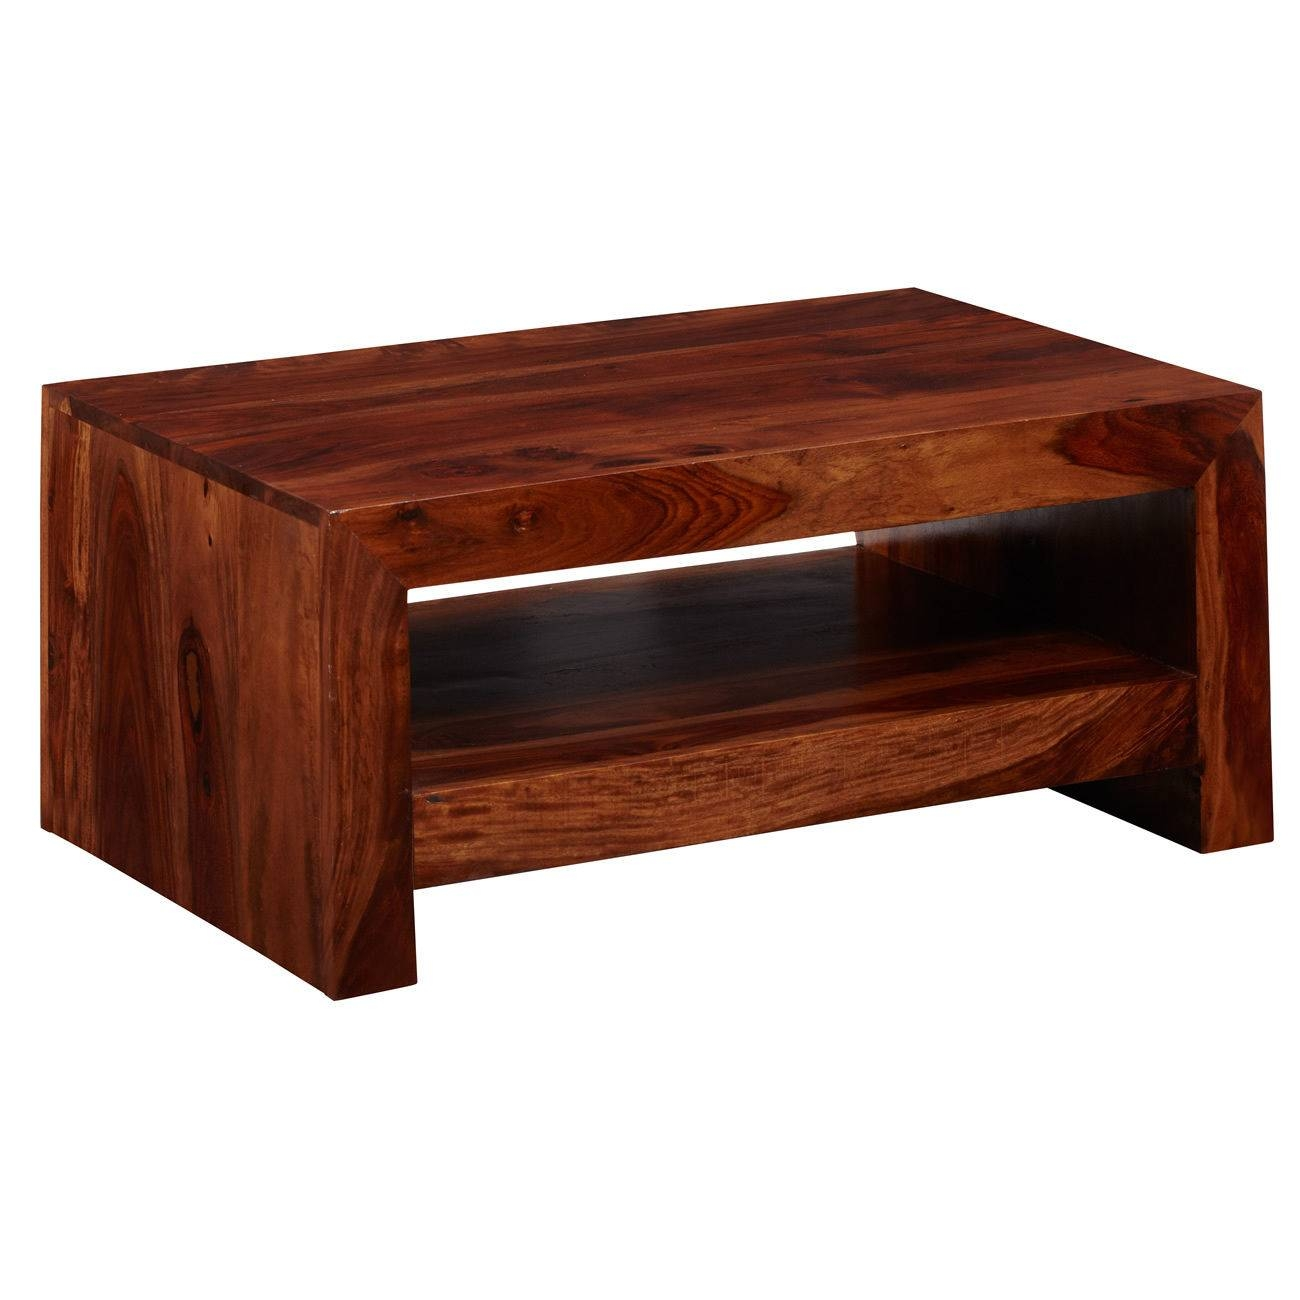 Adorable Wood Coffee Tables With Captivating Home Design – Modern intended for Cheap Wood Coffee Tables (Image 1 of 30)